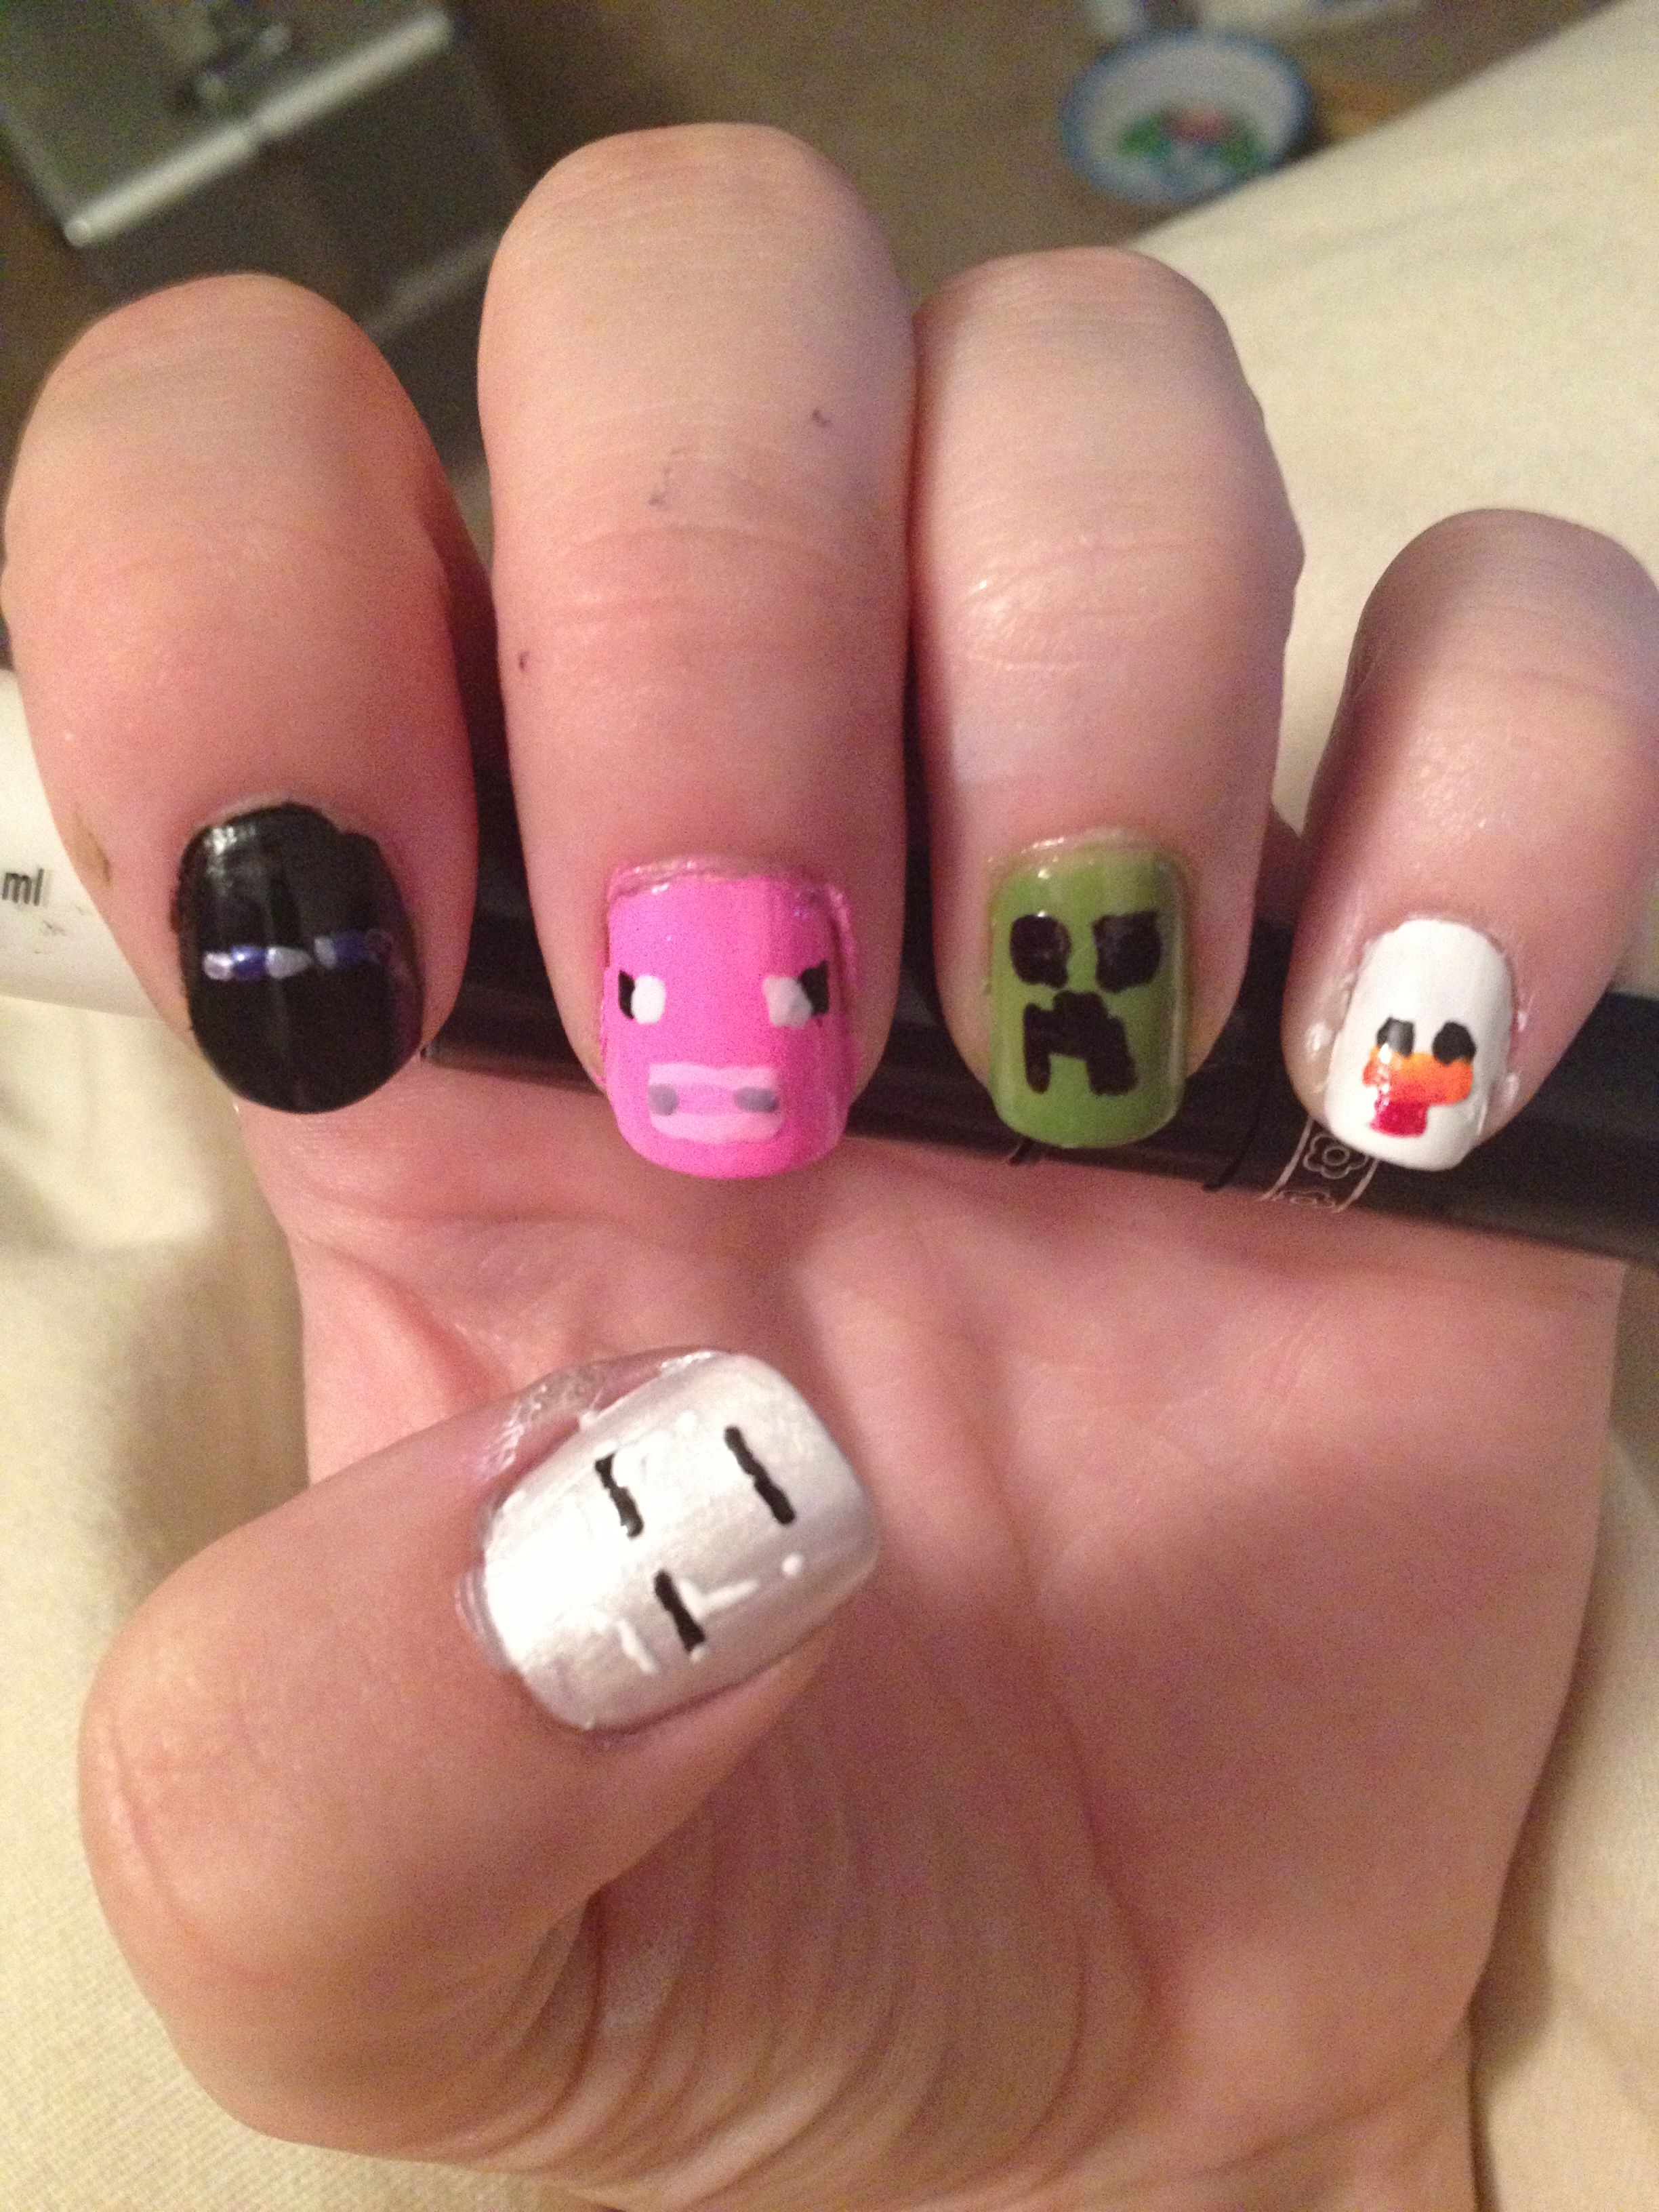 Minecraft nails by using Migi nail art pens. | Nail Art | Pinterest